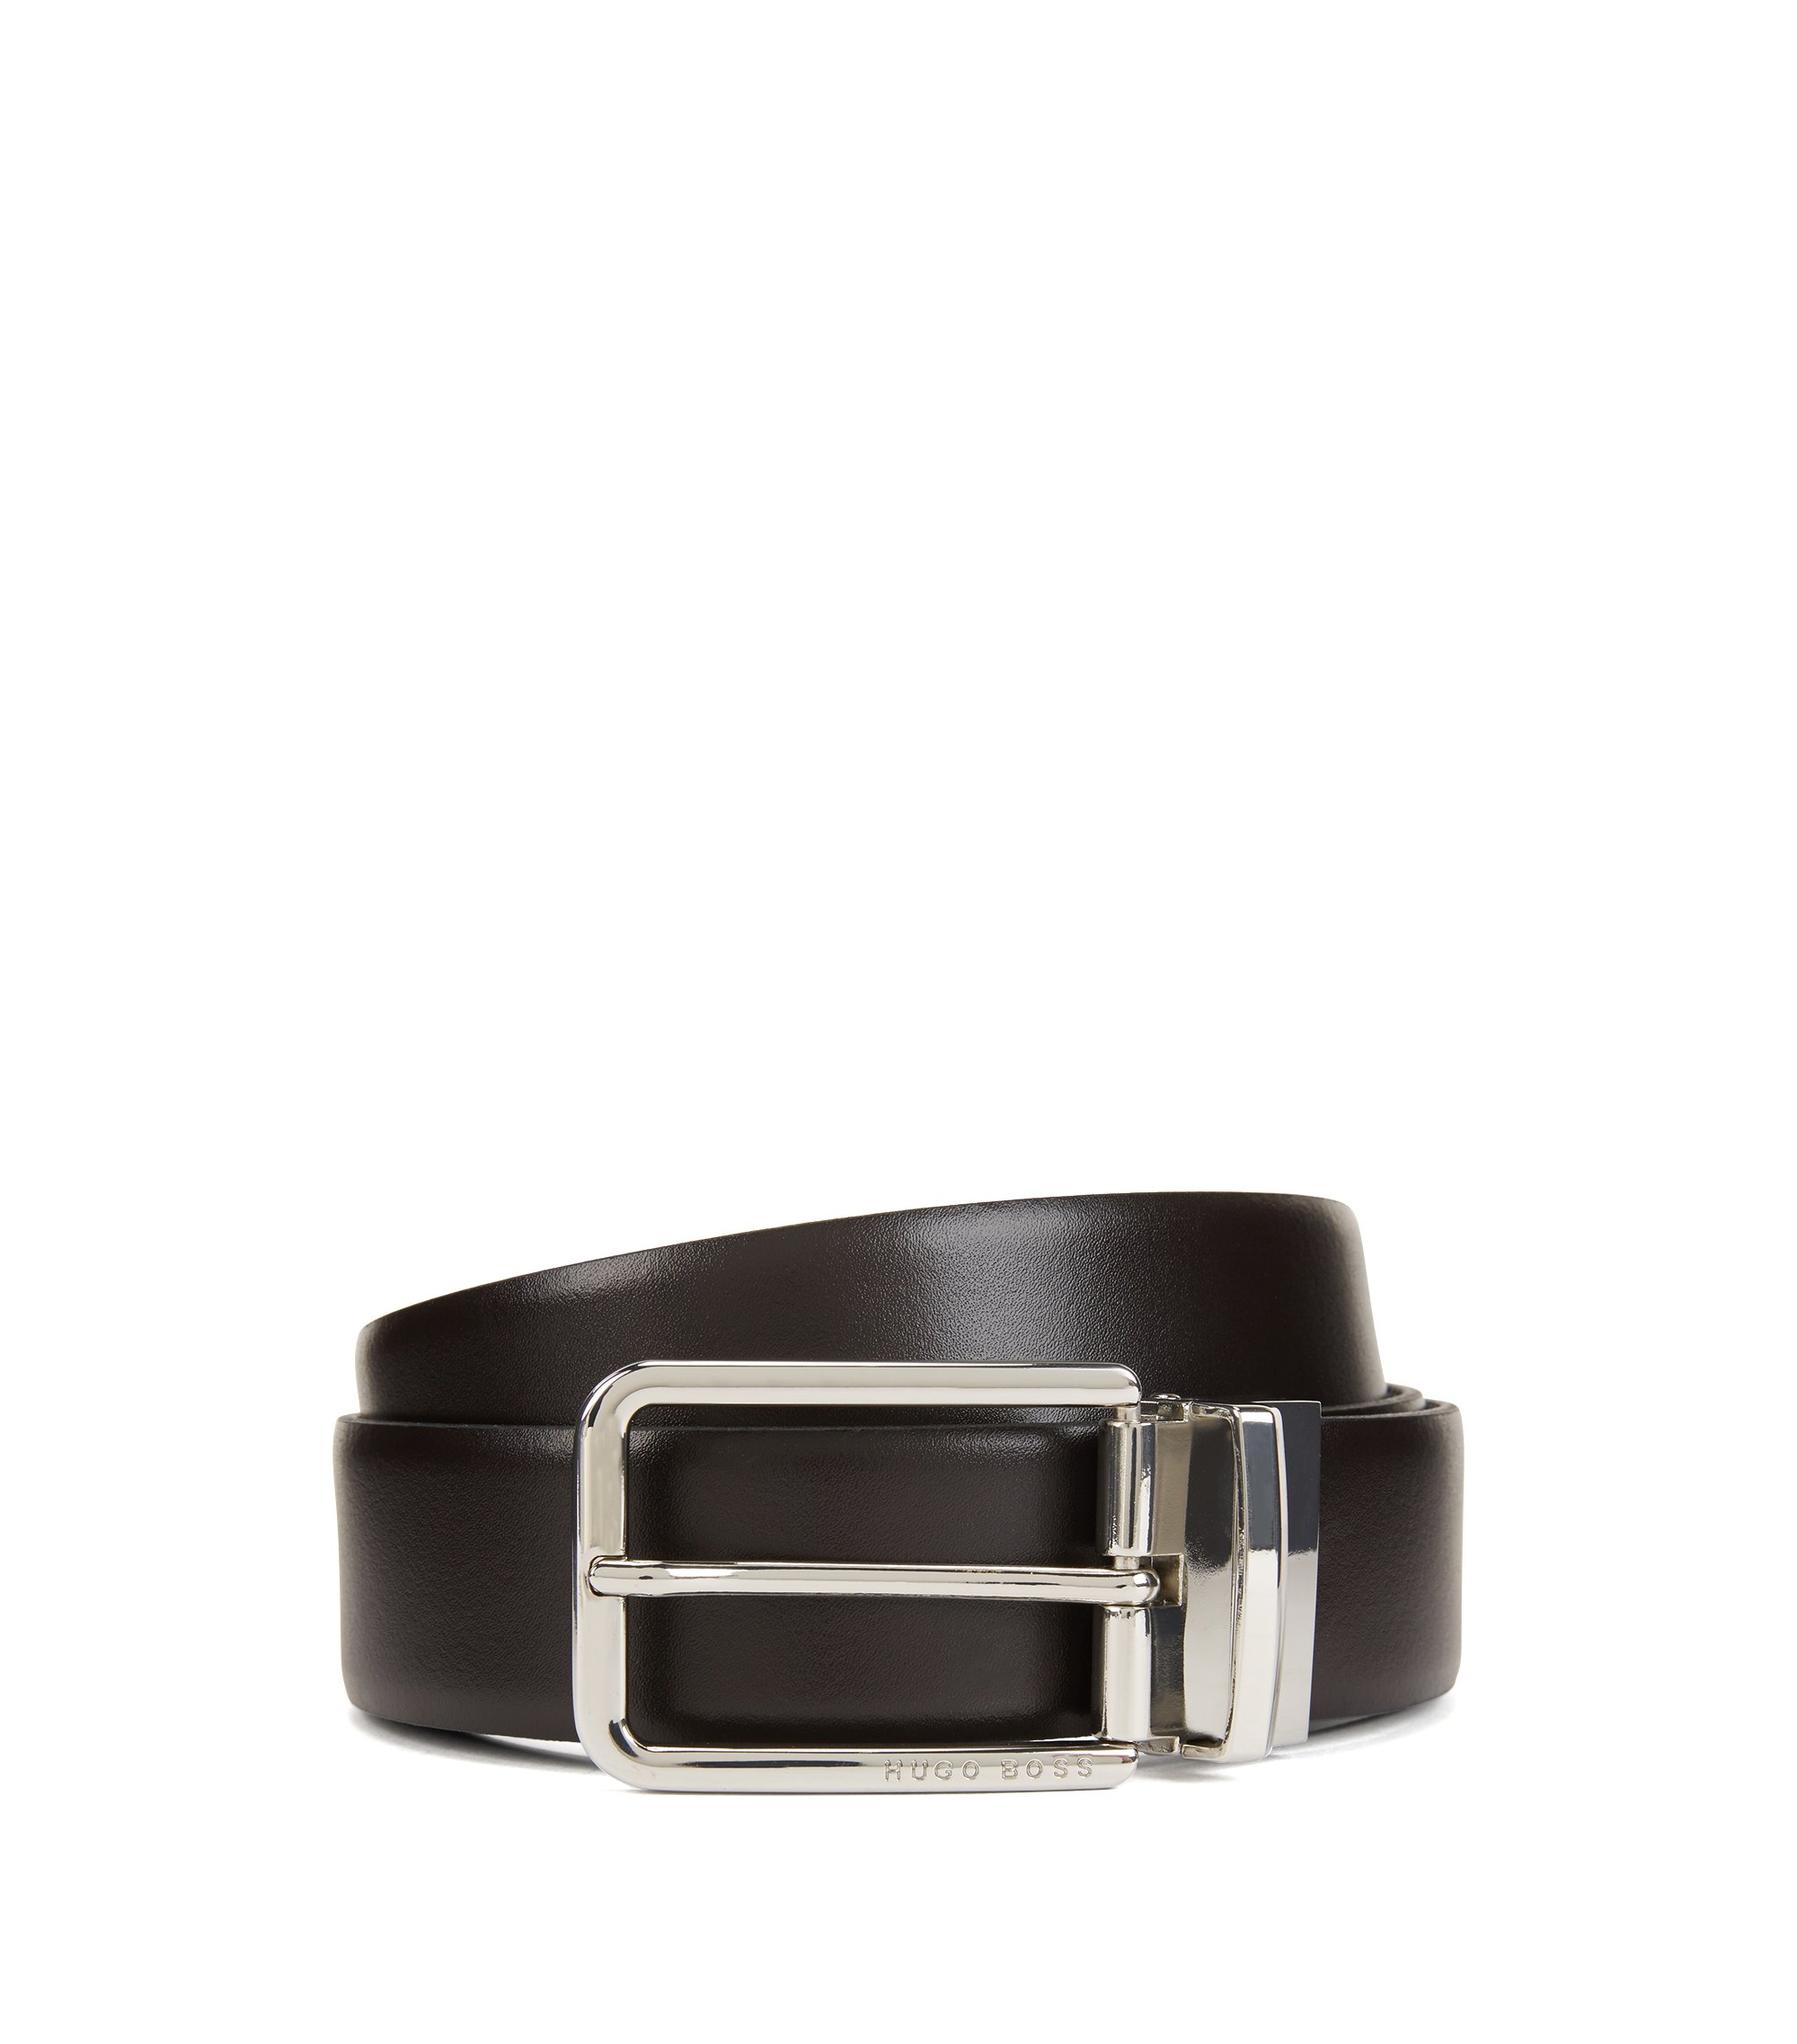 Reversible leather belt in two colors with silver buckle, Dark Brown